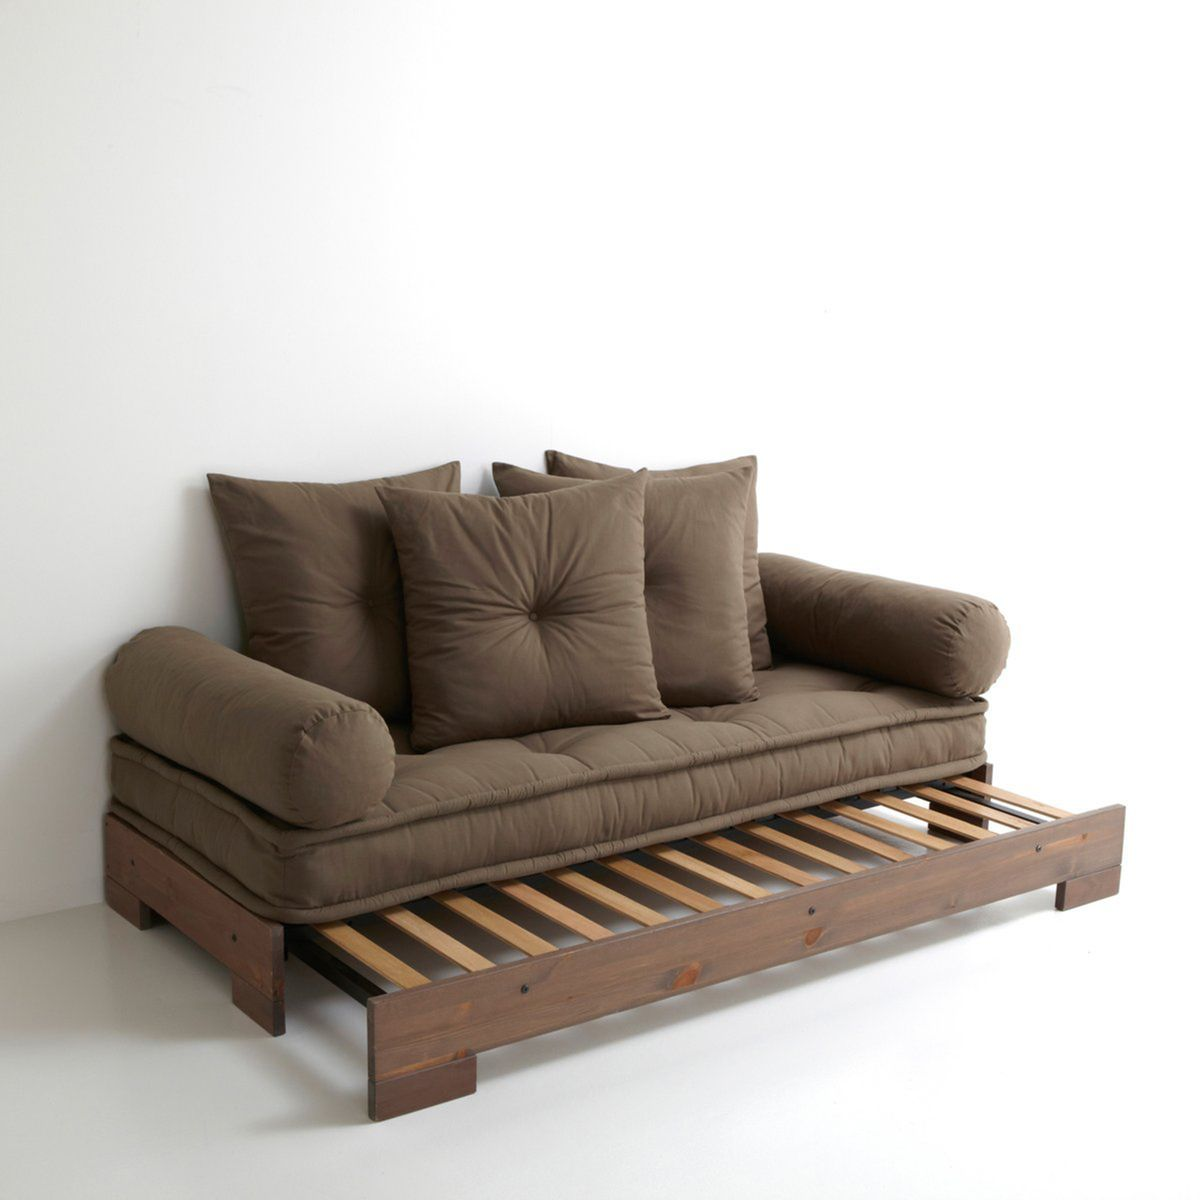 Banquette Lit De Repos Sahel 3 Places Three Seater Sofa Bed Daybed Design